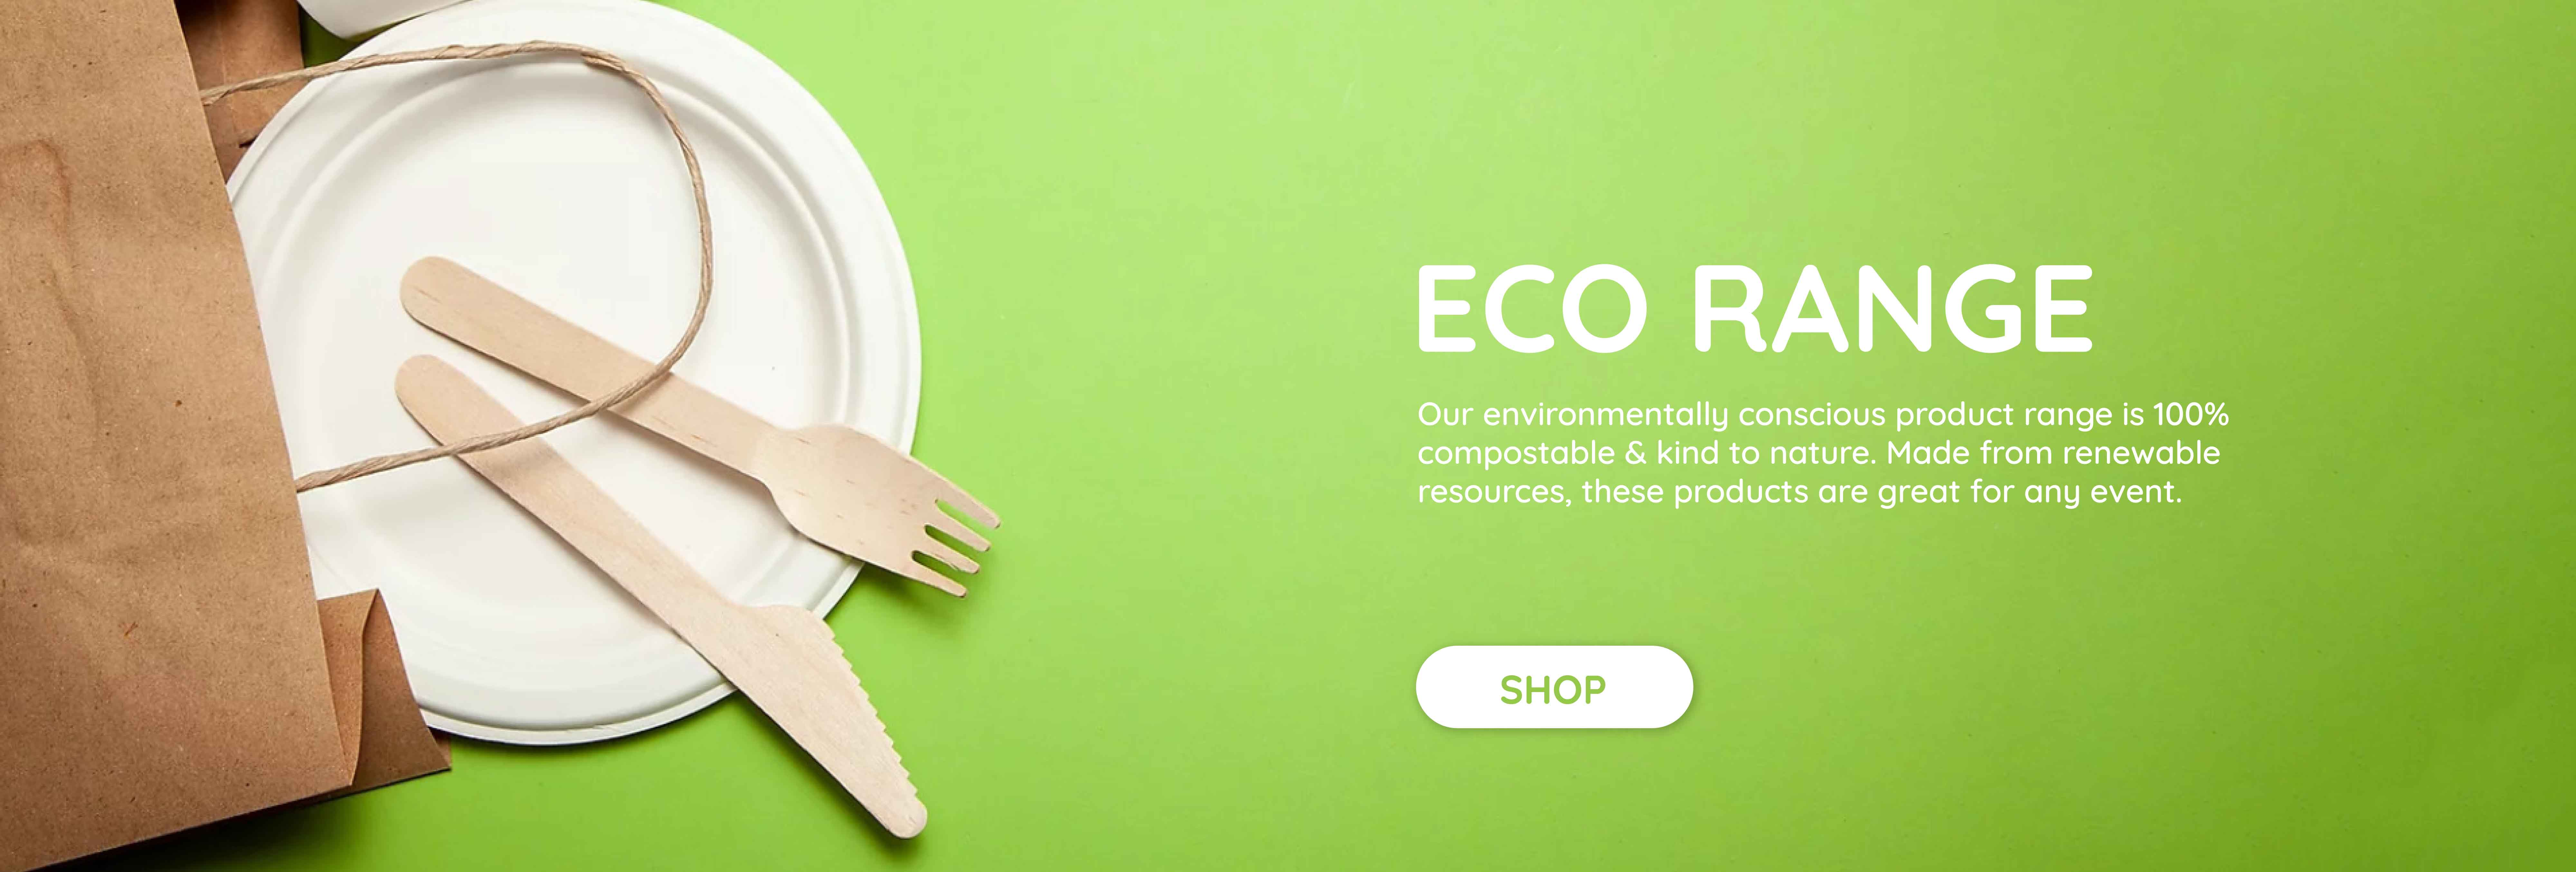 Shop eco range